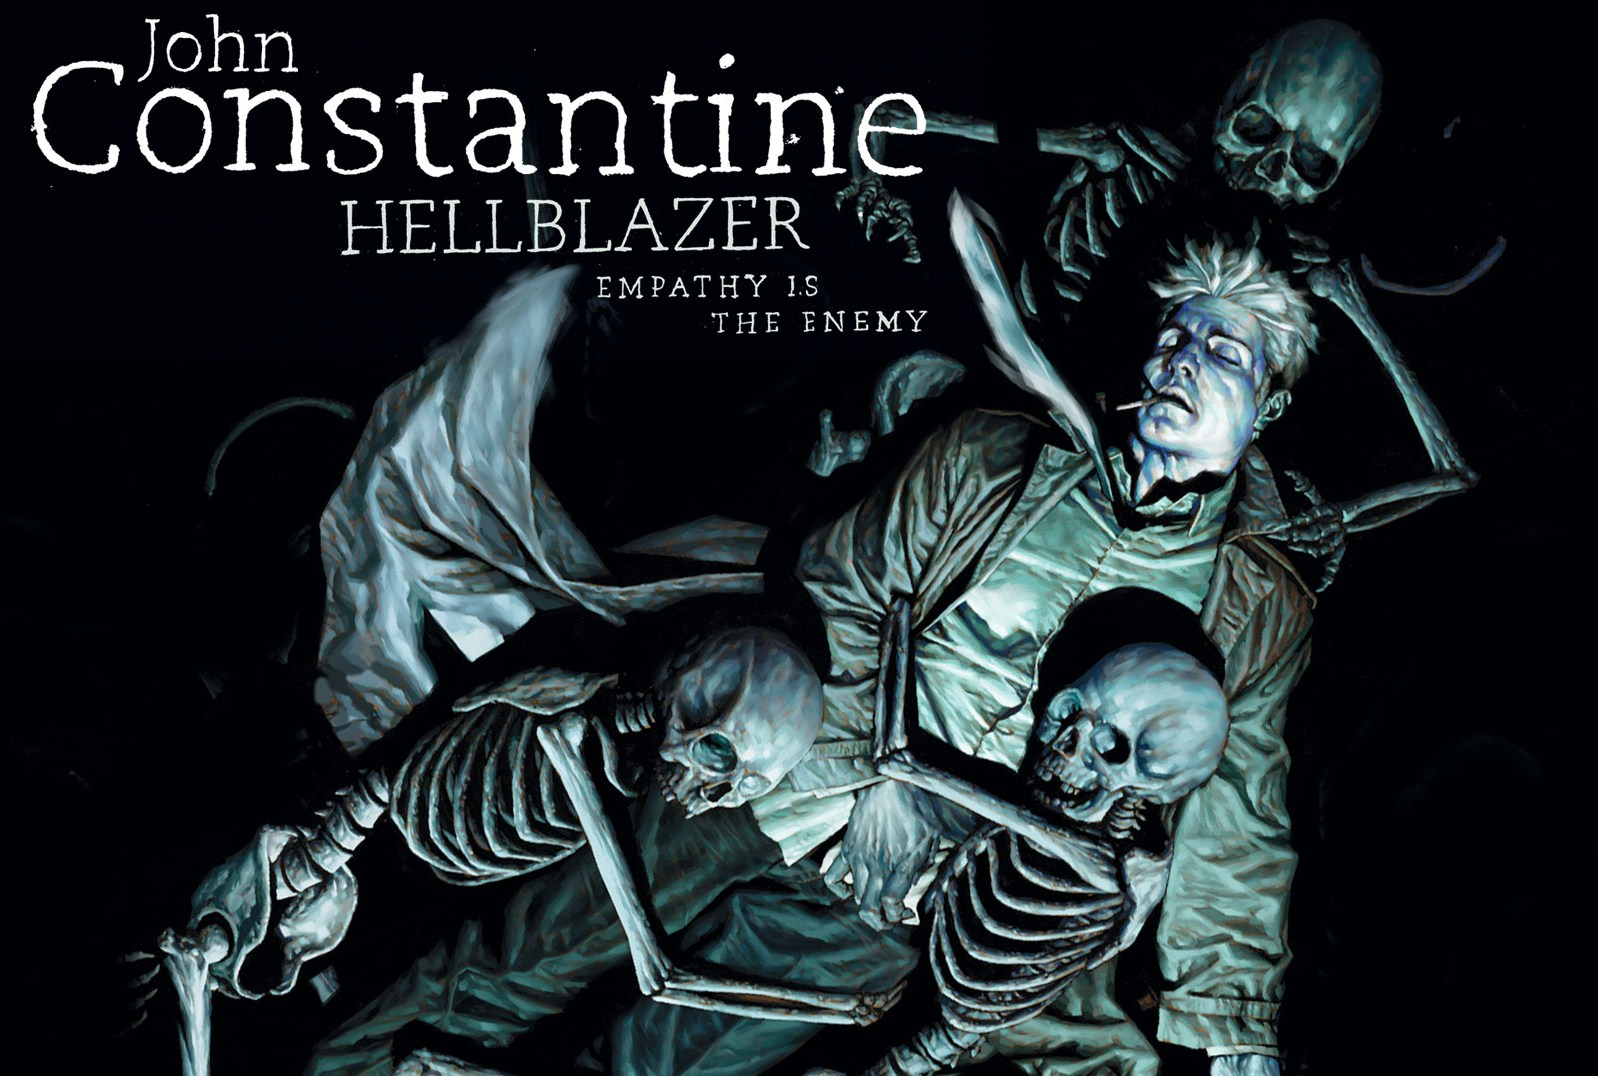 hellblazer_empathy_is_the_enemy_1600x1200